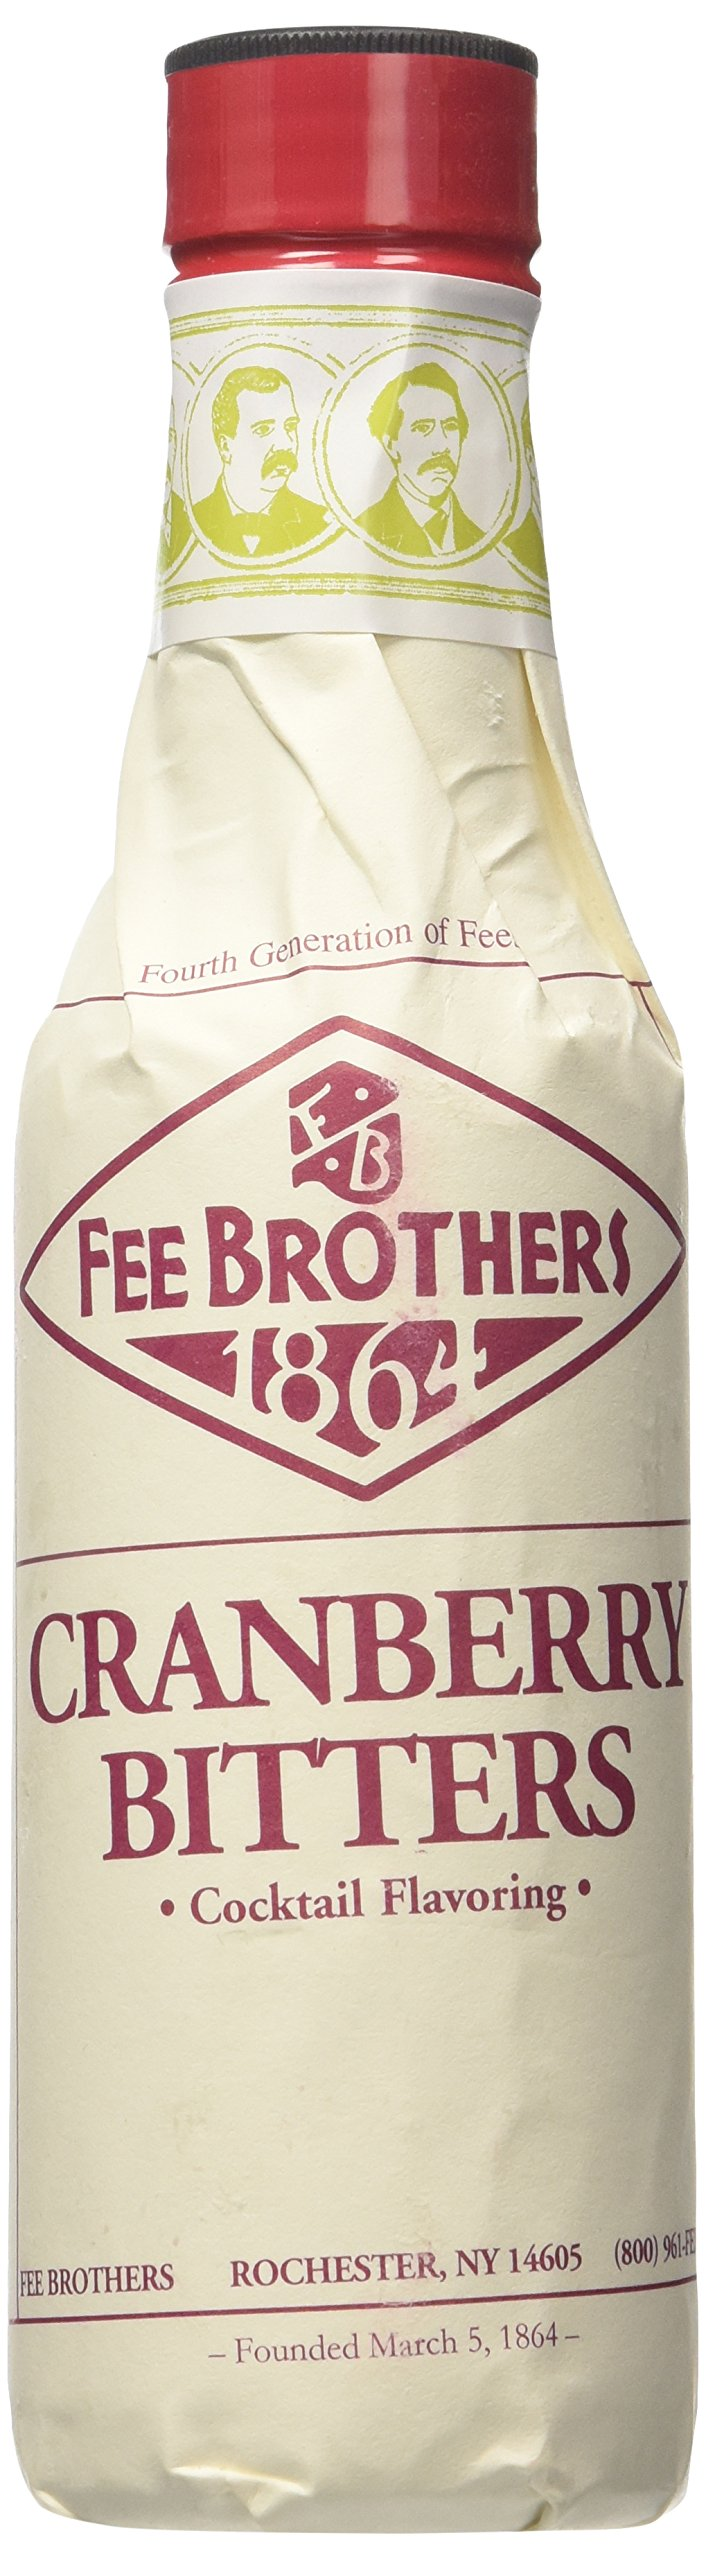 FEE BROTHERS 1864 BITTERS CRANBERRY Bitter aromatizzante CL.10